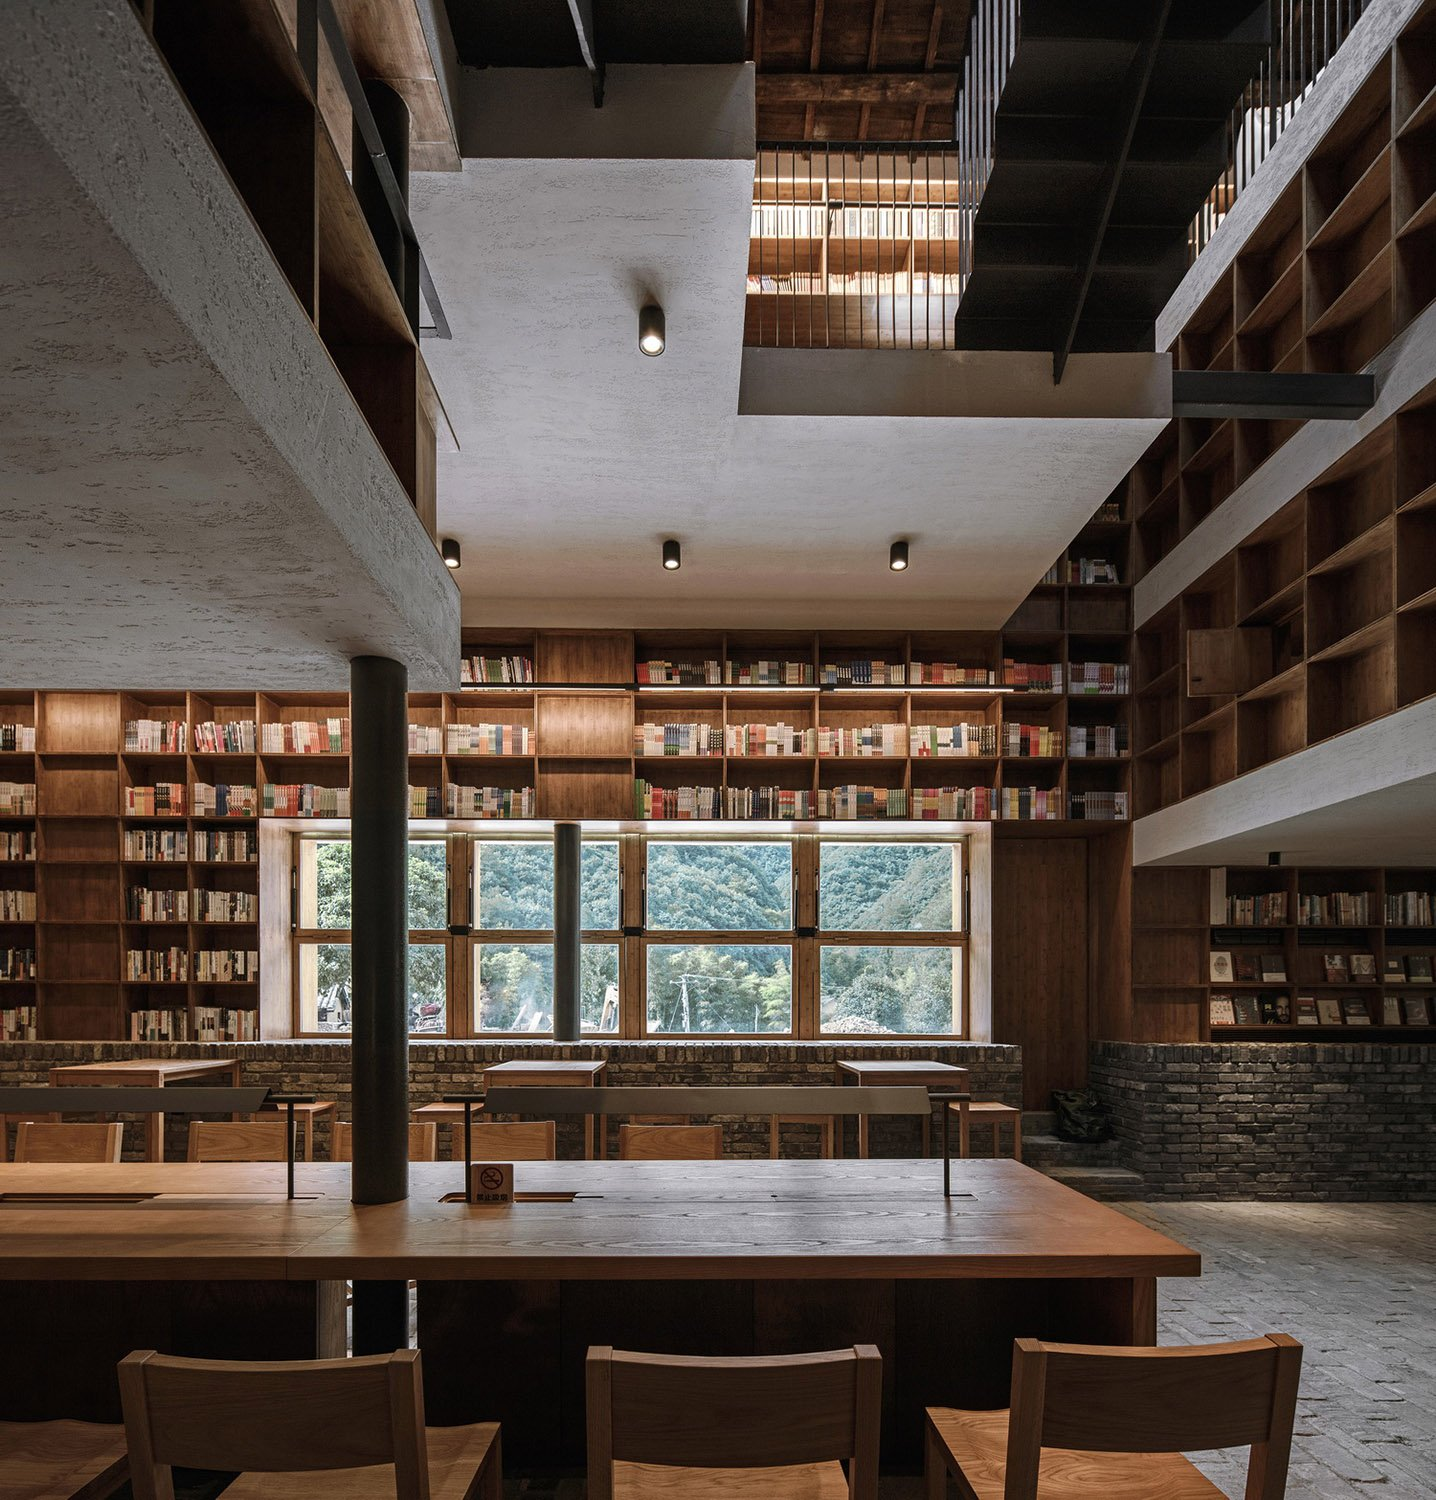 the library with a view fengyuzhu